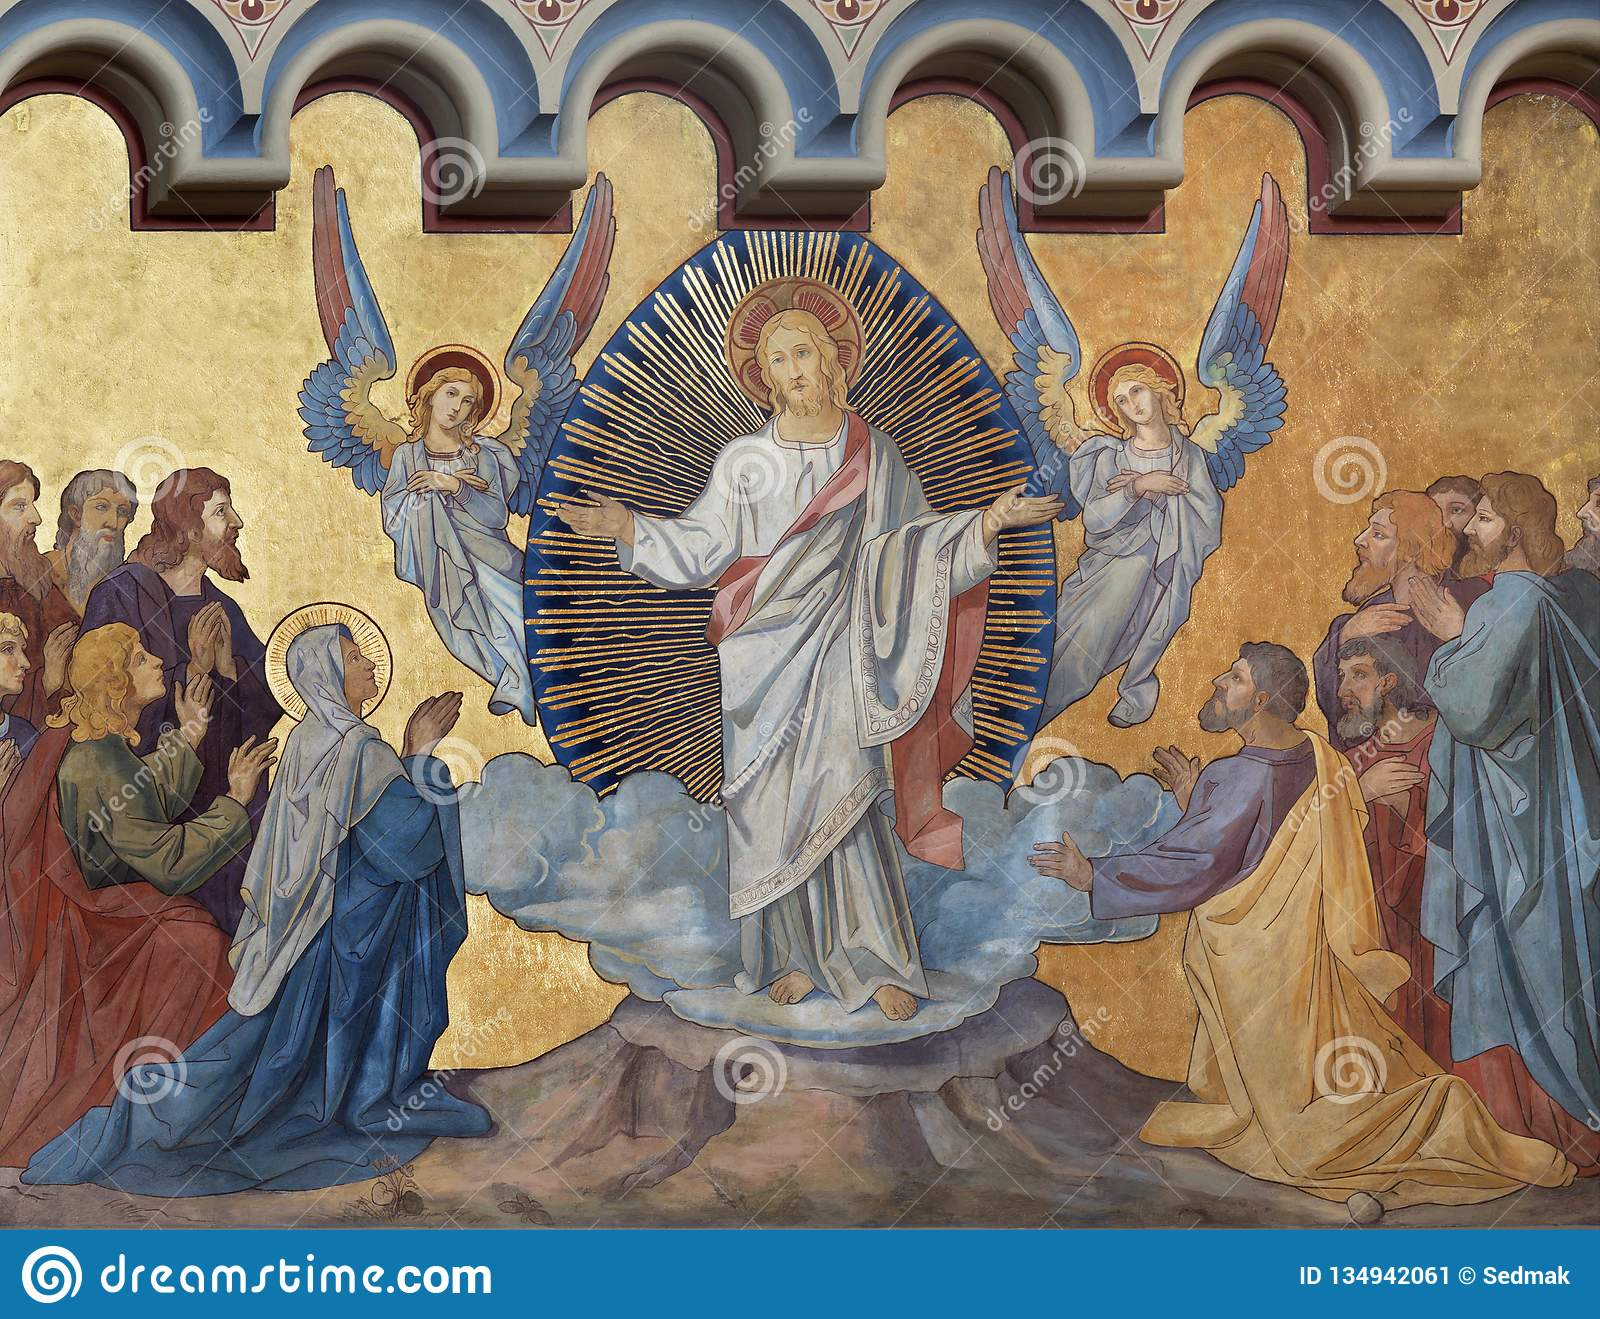 PRAGUE, CZECH REPUBLIC - OCTOBER 17, 2018: The fresco of Ascension of the Lord the in church kostel Svatého Cyrila Metodeje